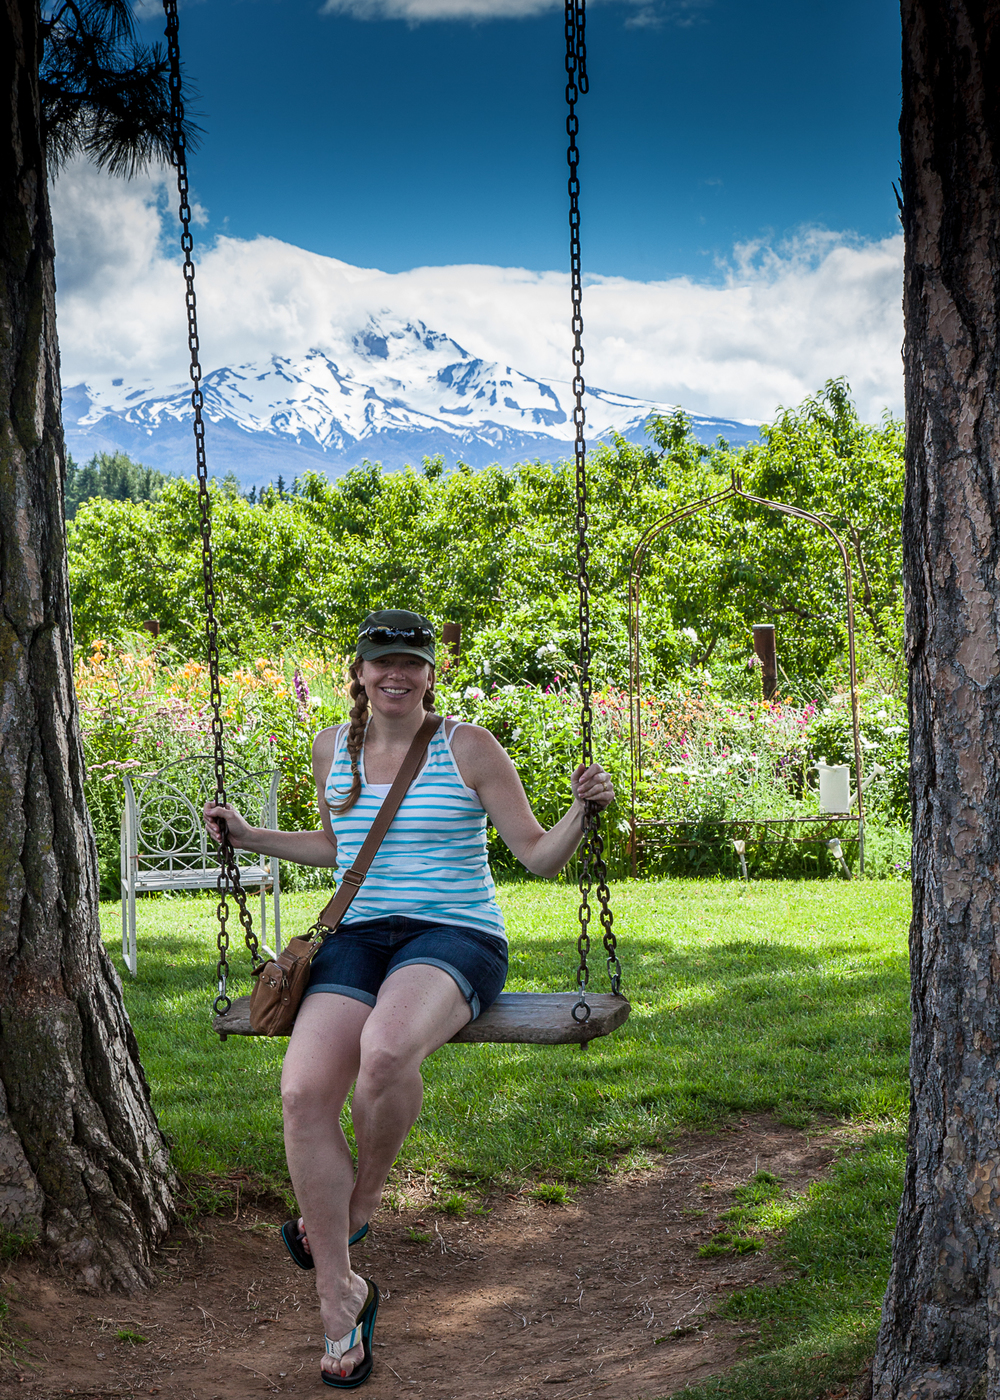 Justine on a swing, with Mount Hood in the background.